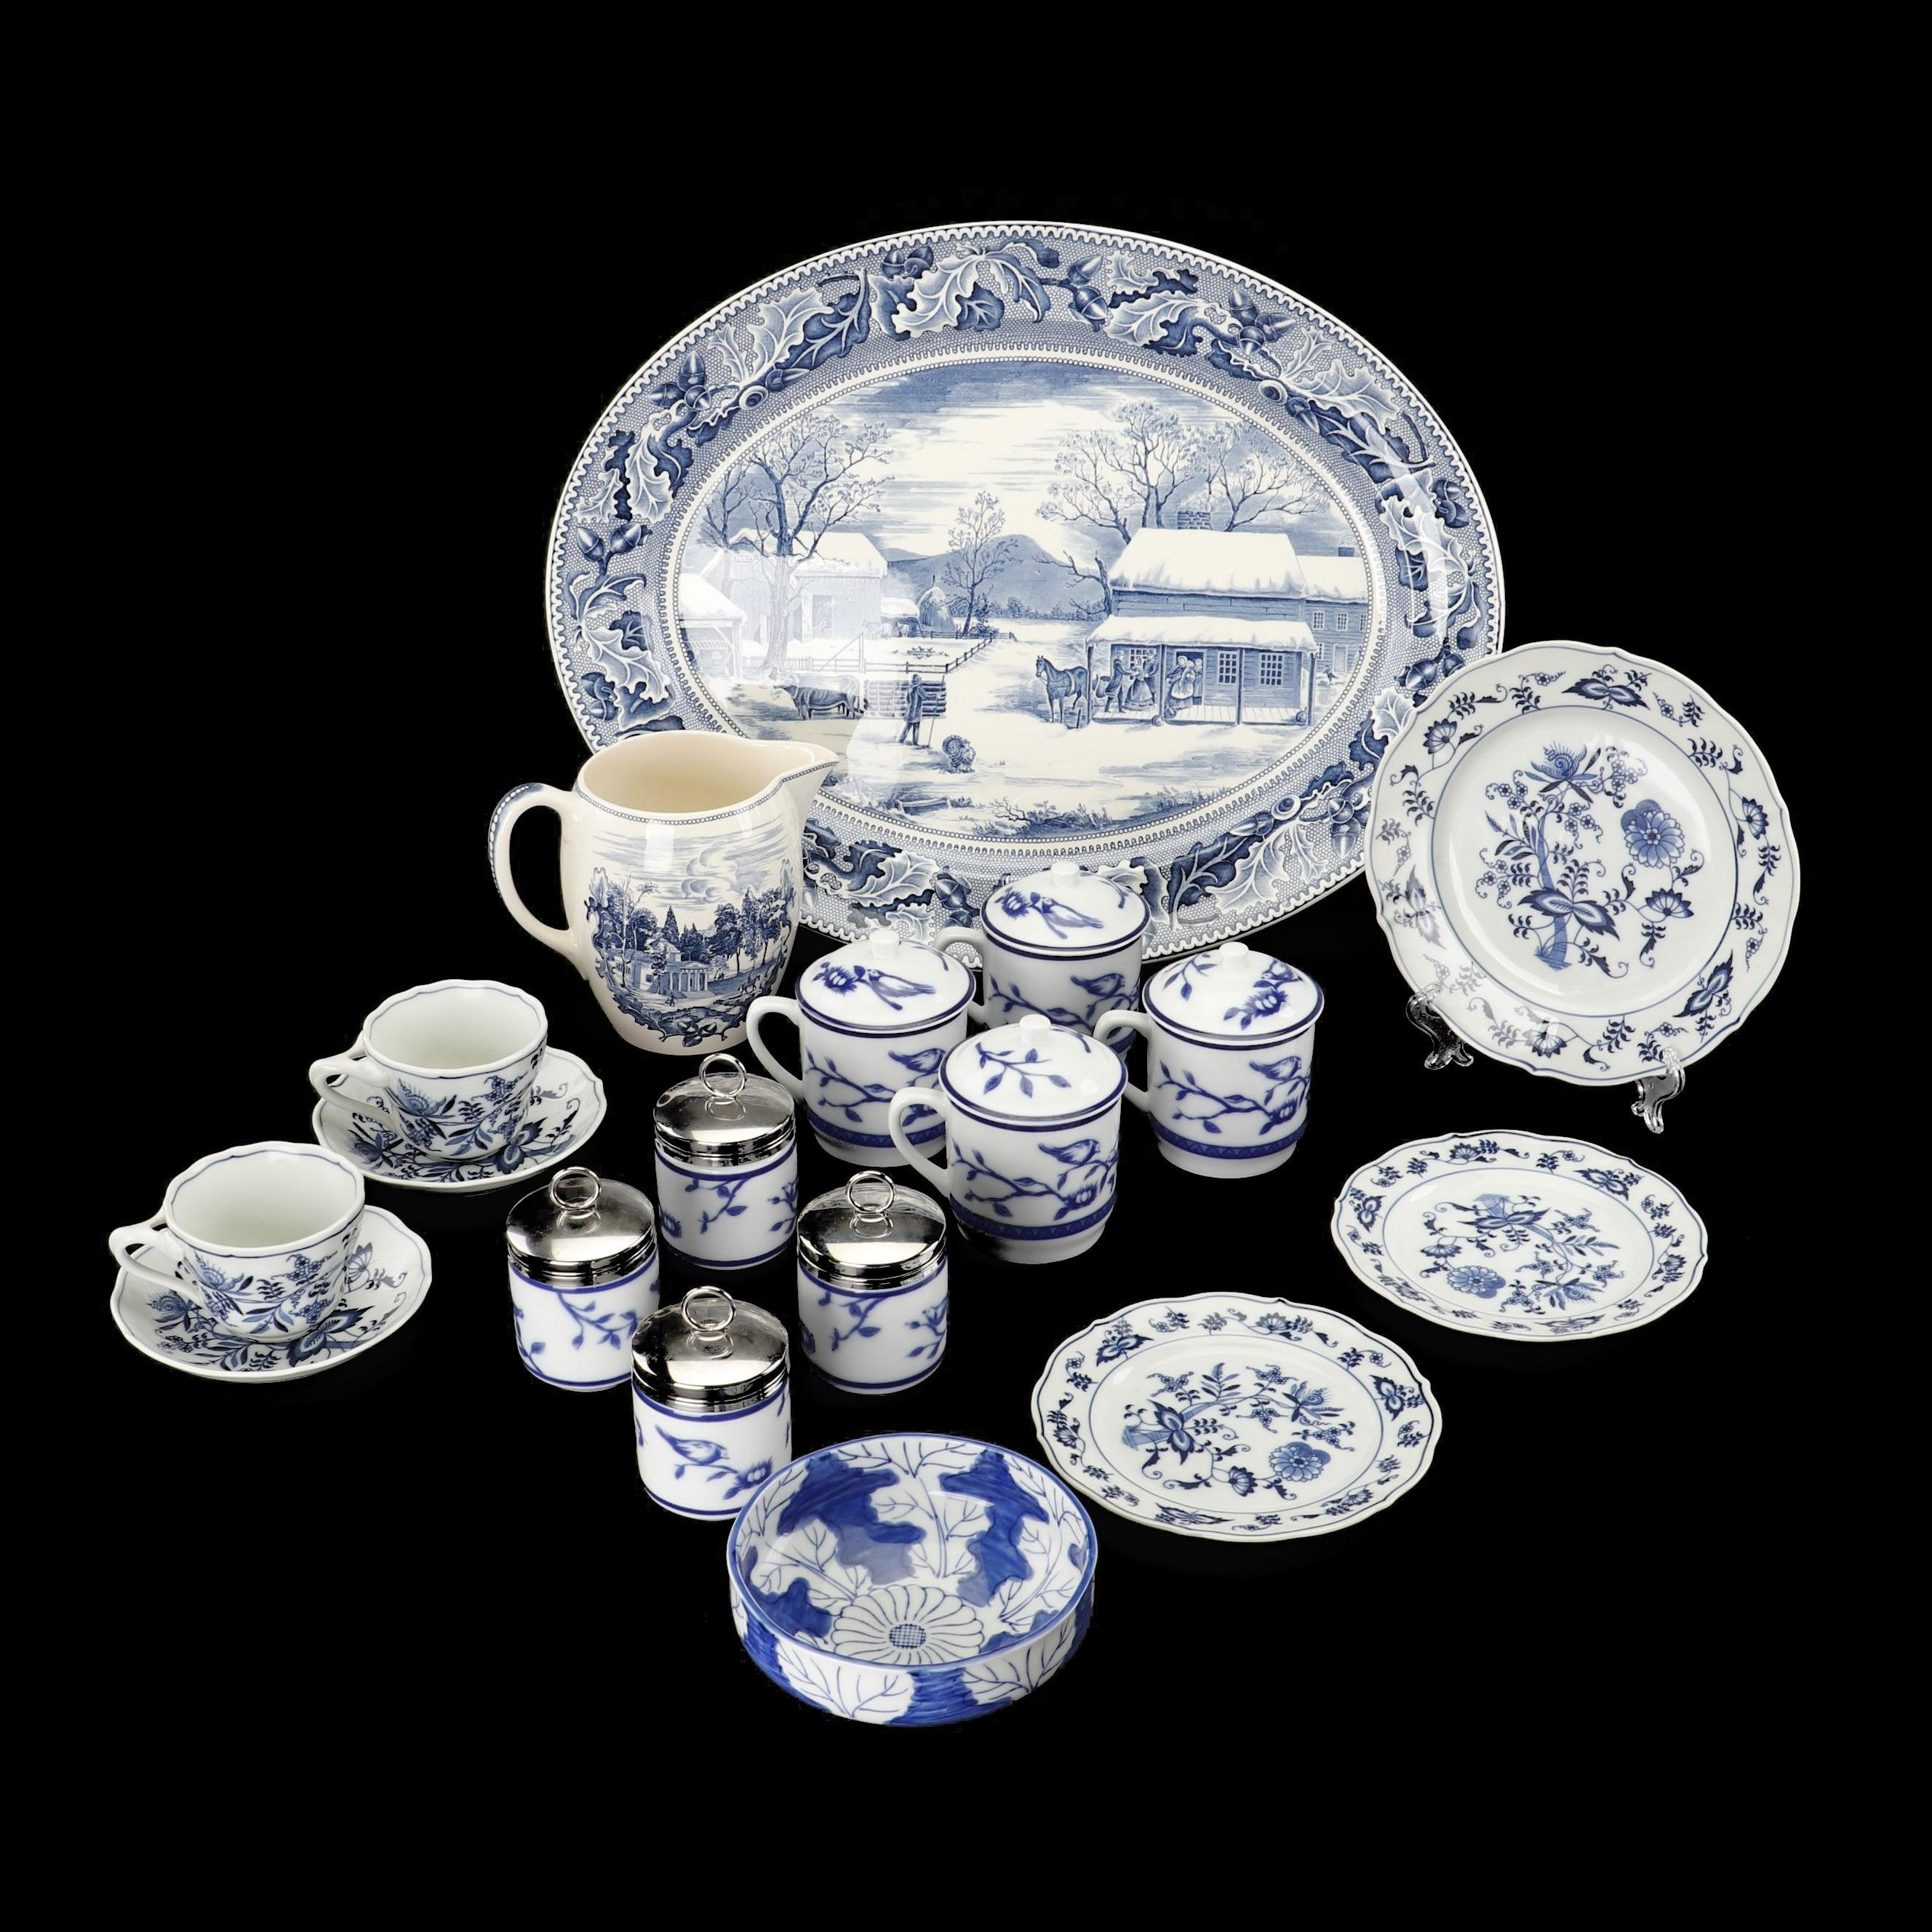 Blue and White Tableware including Johnson Brothers